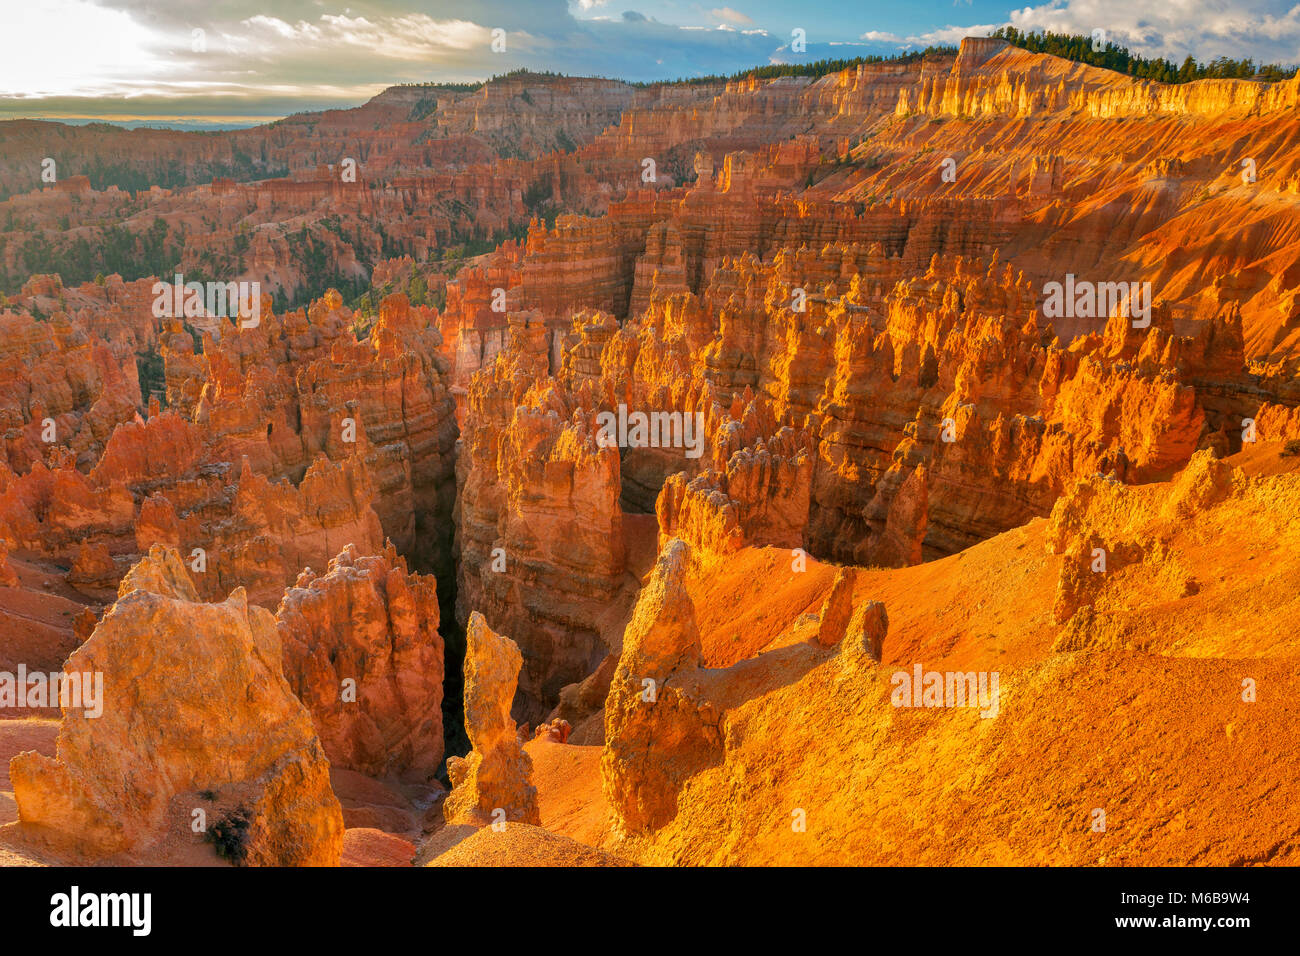 Sunrise, Hoodoos, Wall Street, Bryce Canyon National Park, Utah - Stock Image